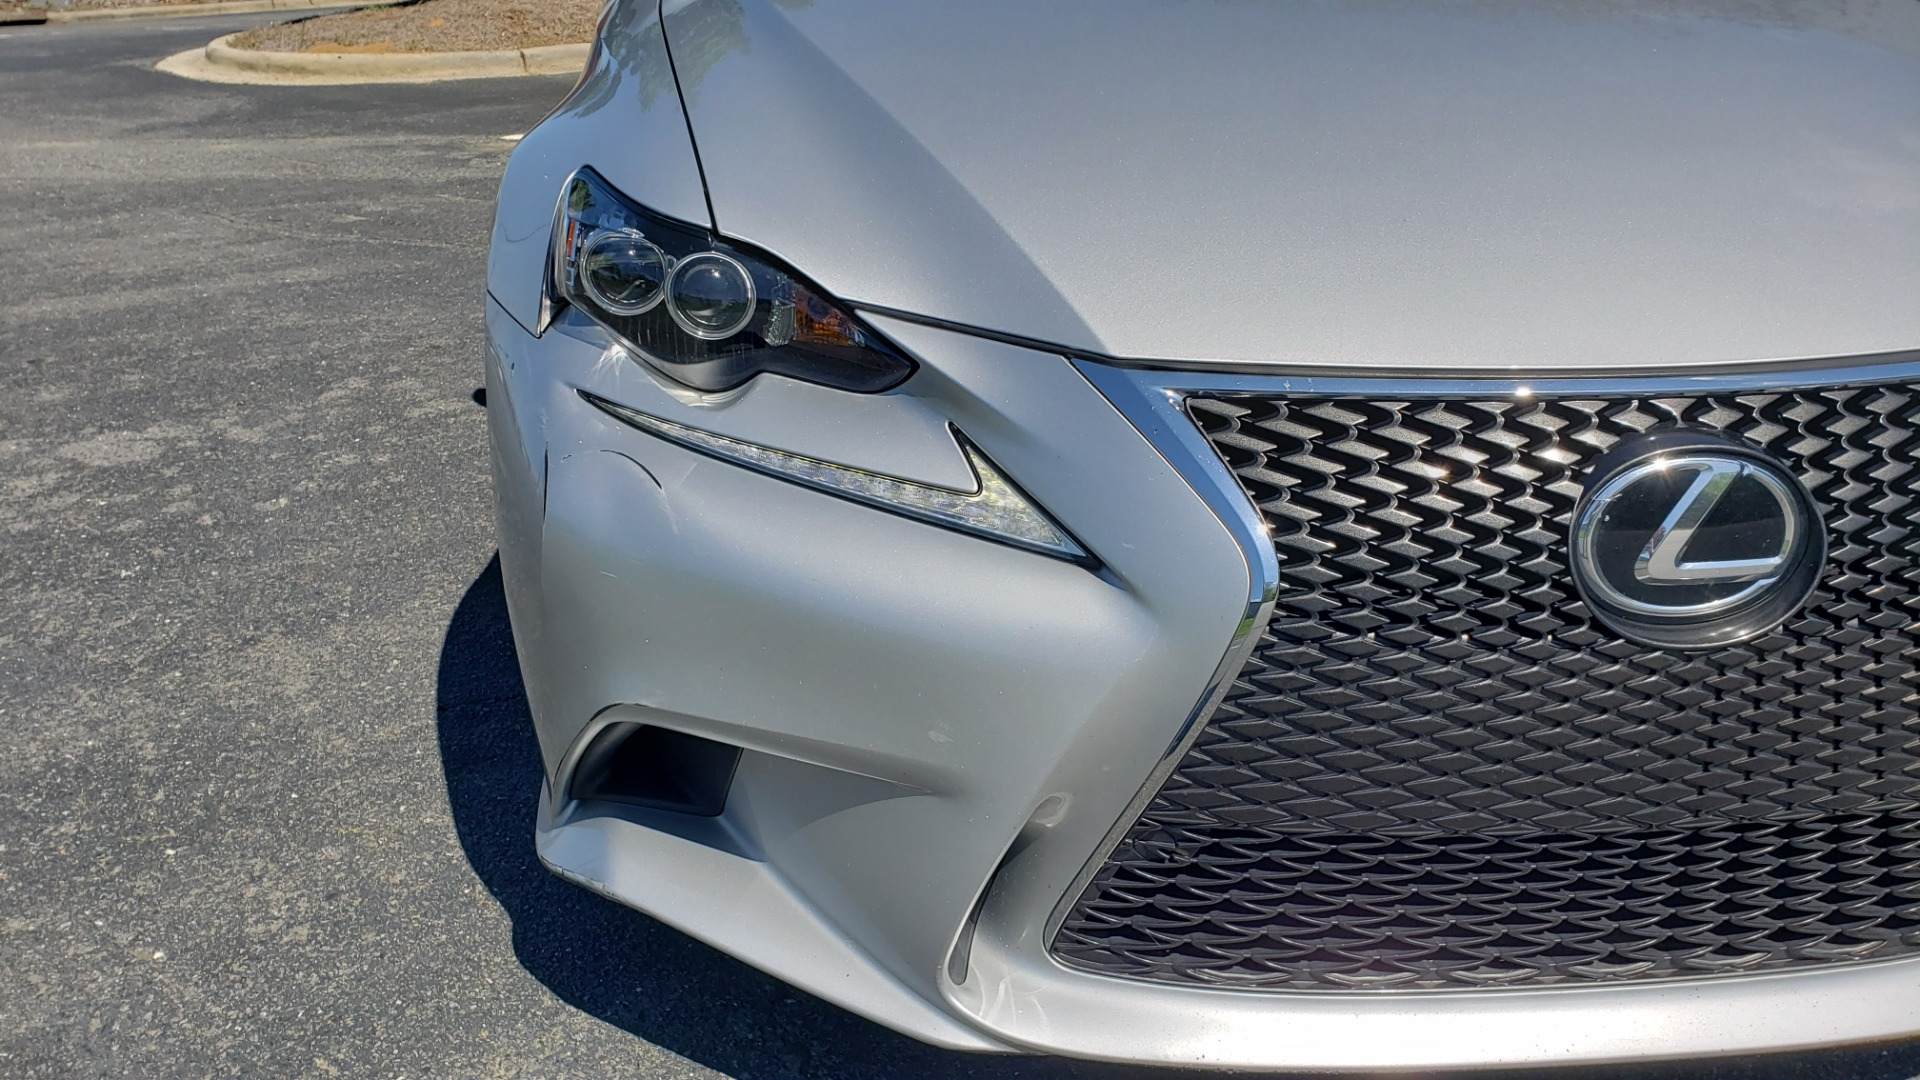 Used 2015 Lexus IS 250 F-SPORT / BSM / SUNROOF / VENT SEATS / REARVIEW for sale Sold at Formula Imports in Charlotte NC 28227 24